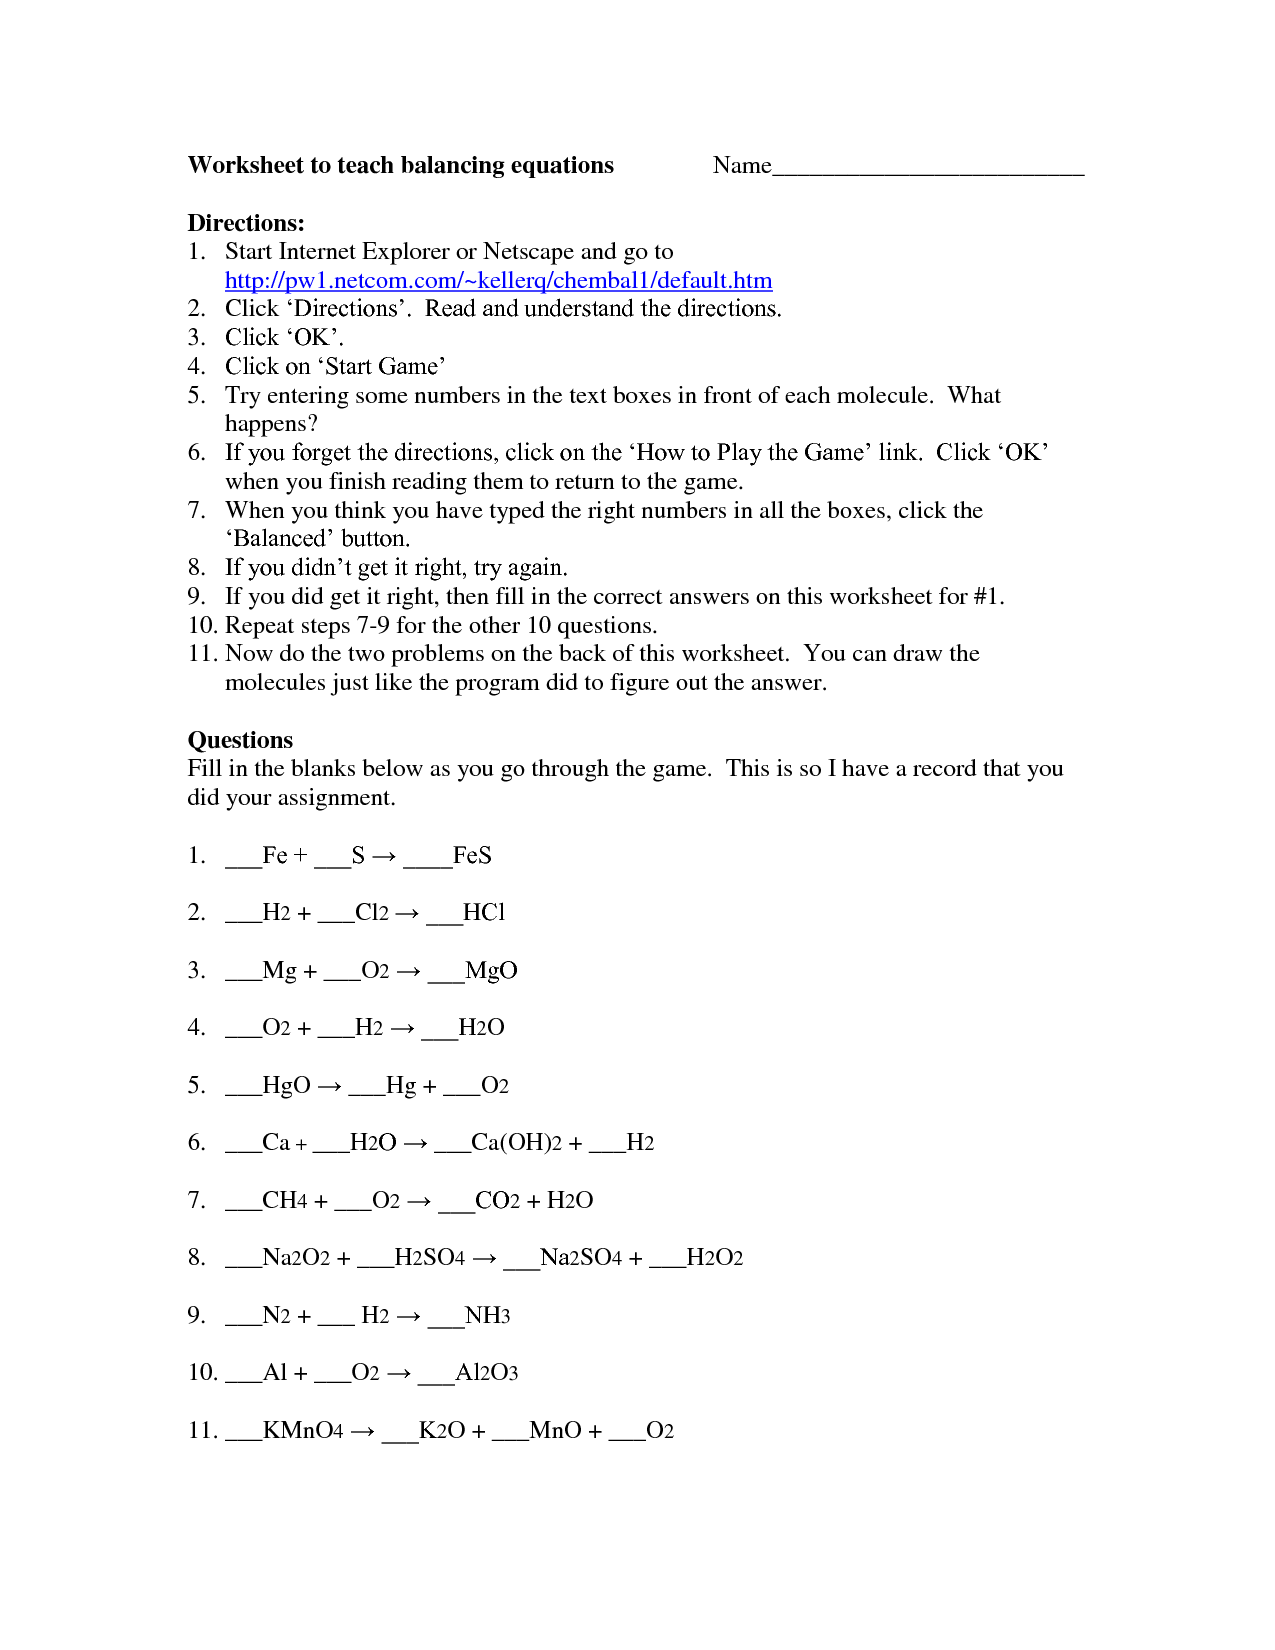 13 Best Images Of Chemical Equations Worksheet